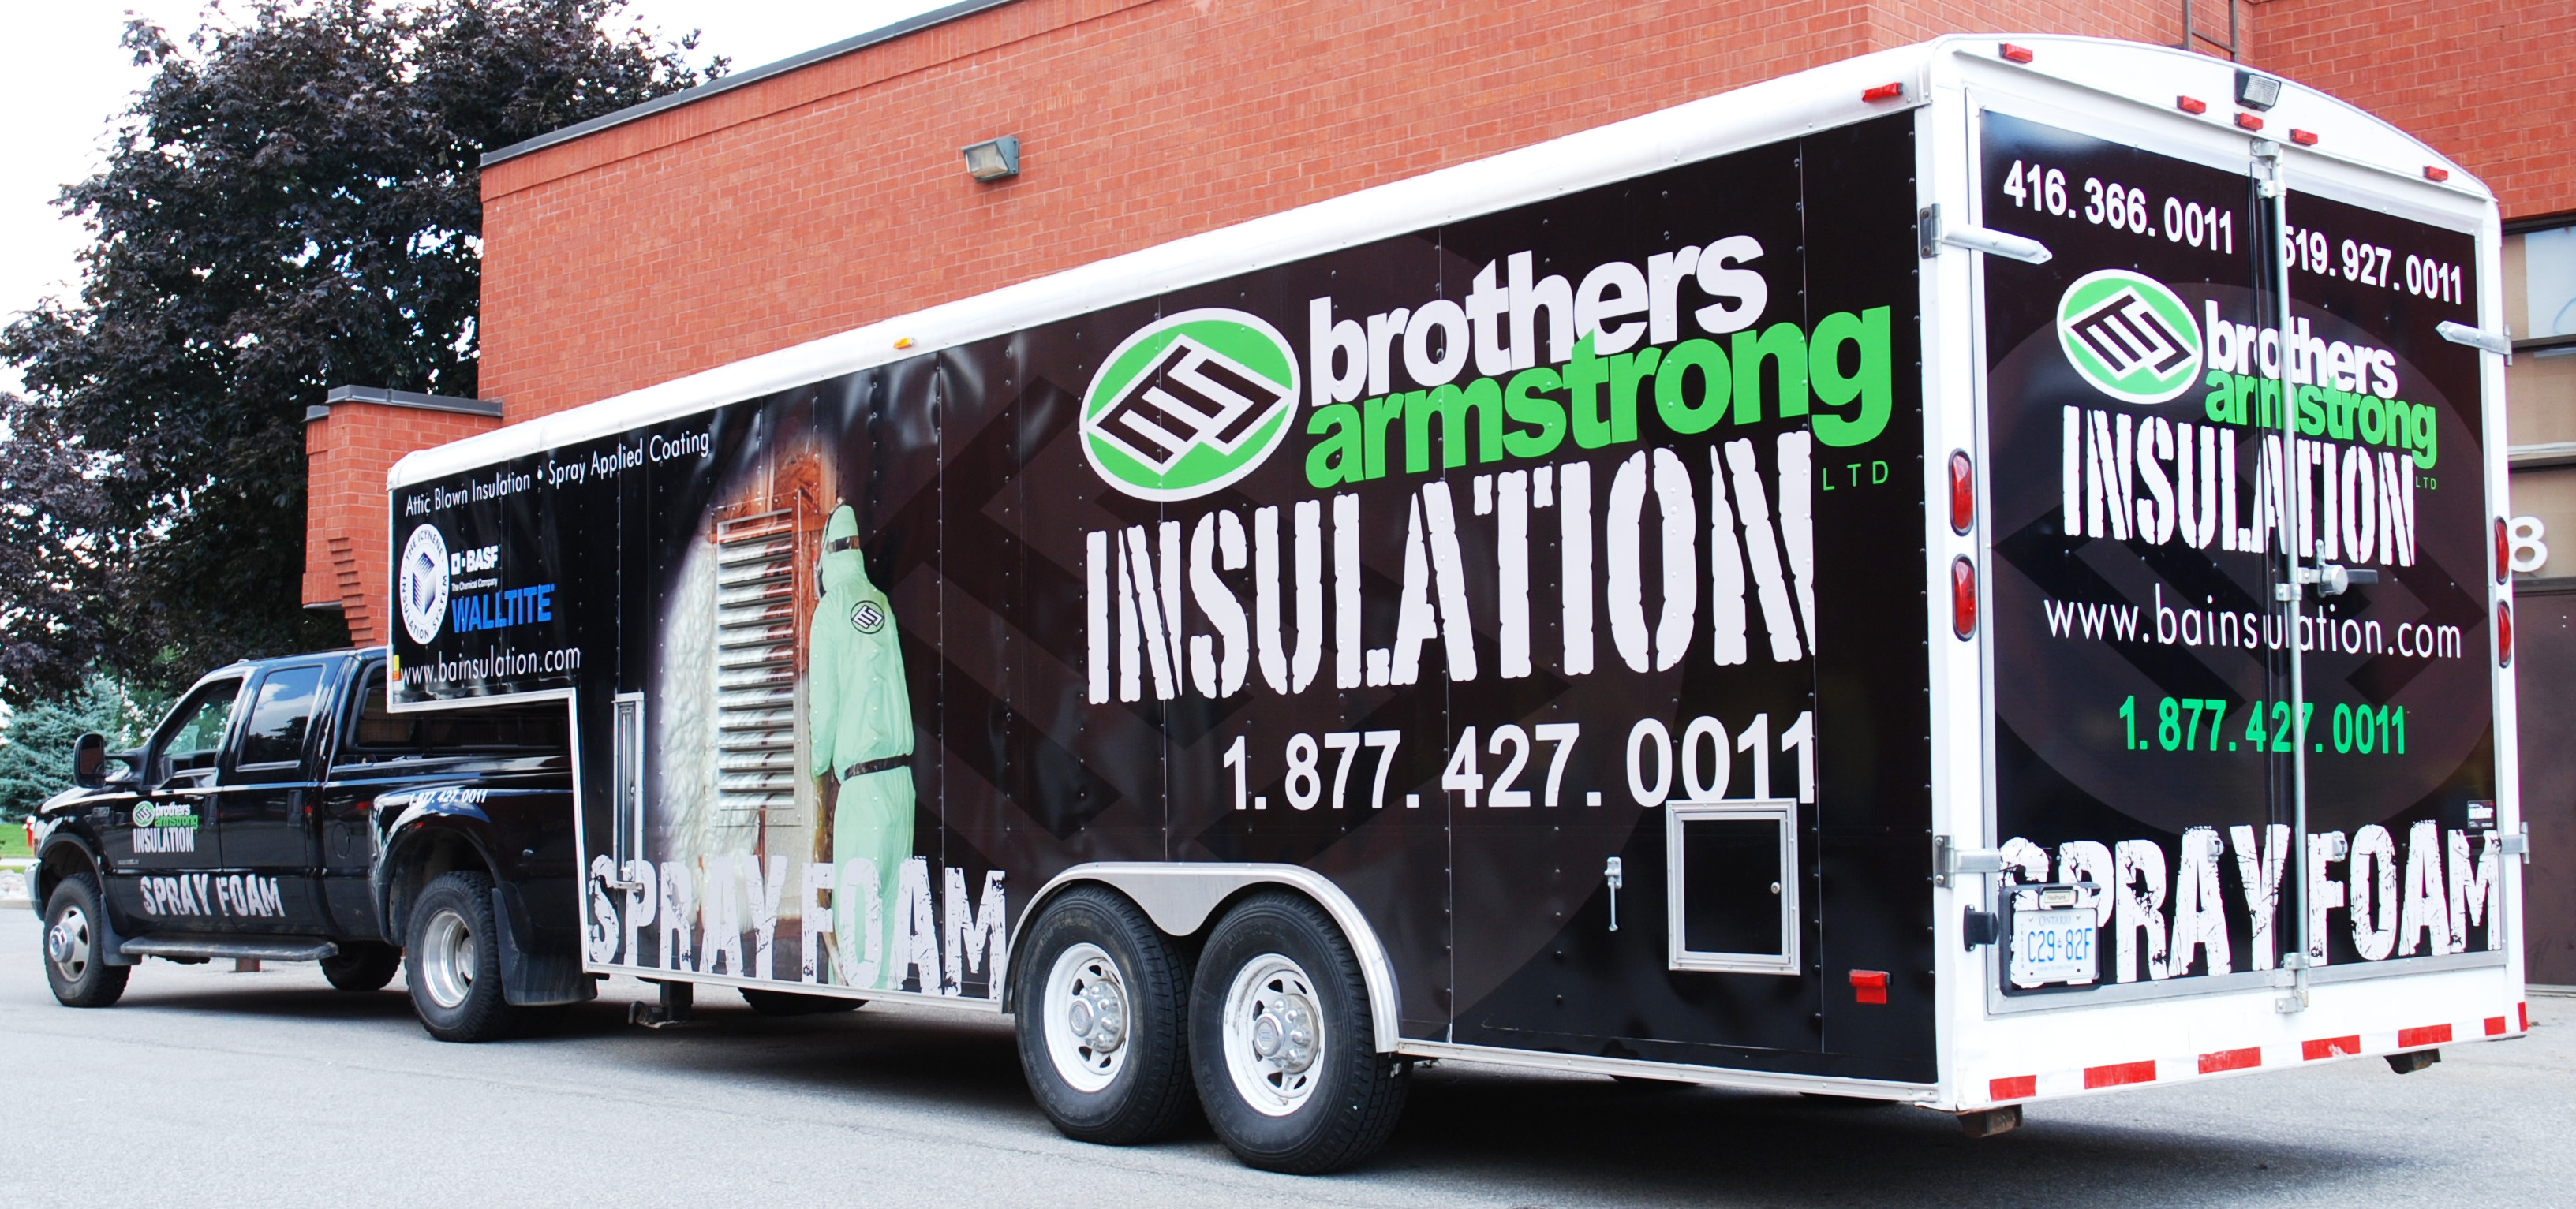 Vehicle Wraps is one of the fastest growing forms of